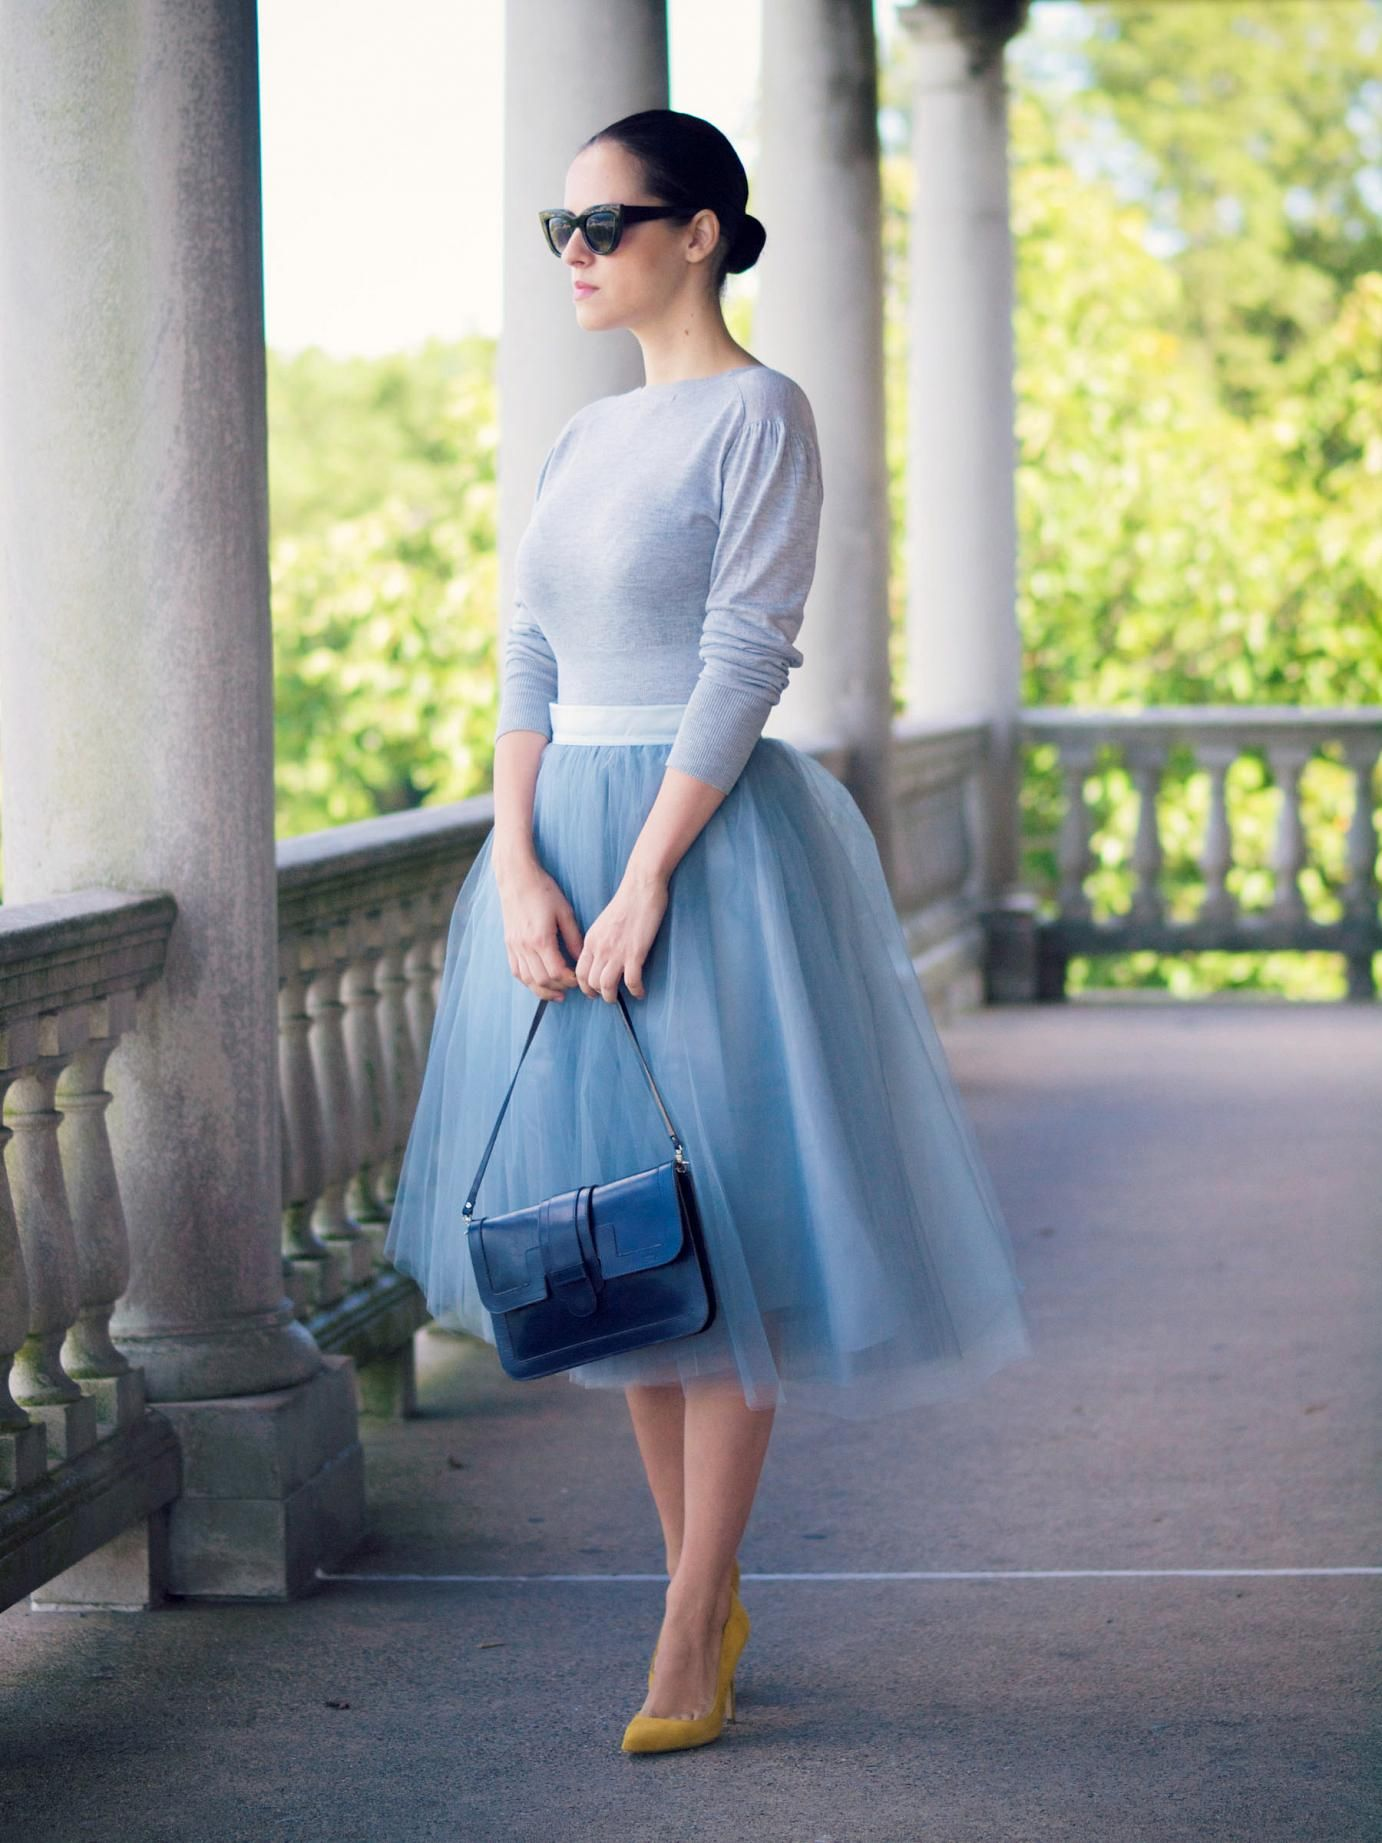 À La Degas | Cat sunglasses, Tulle skirts and Grey outfit